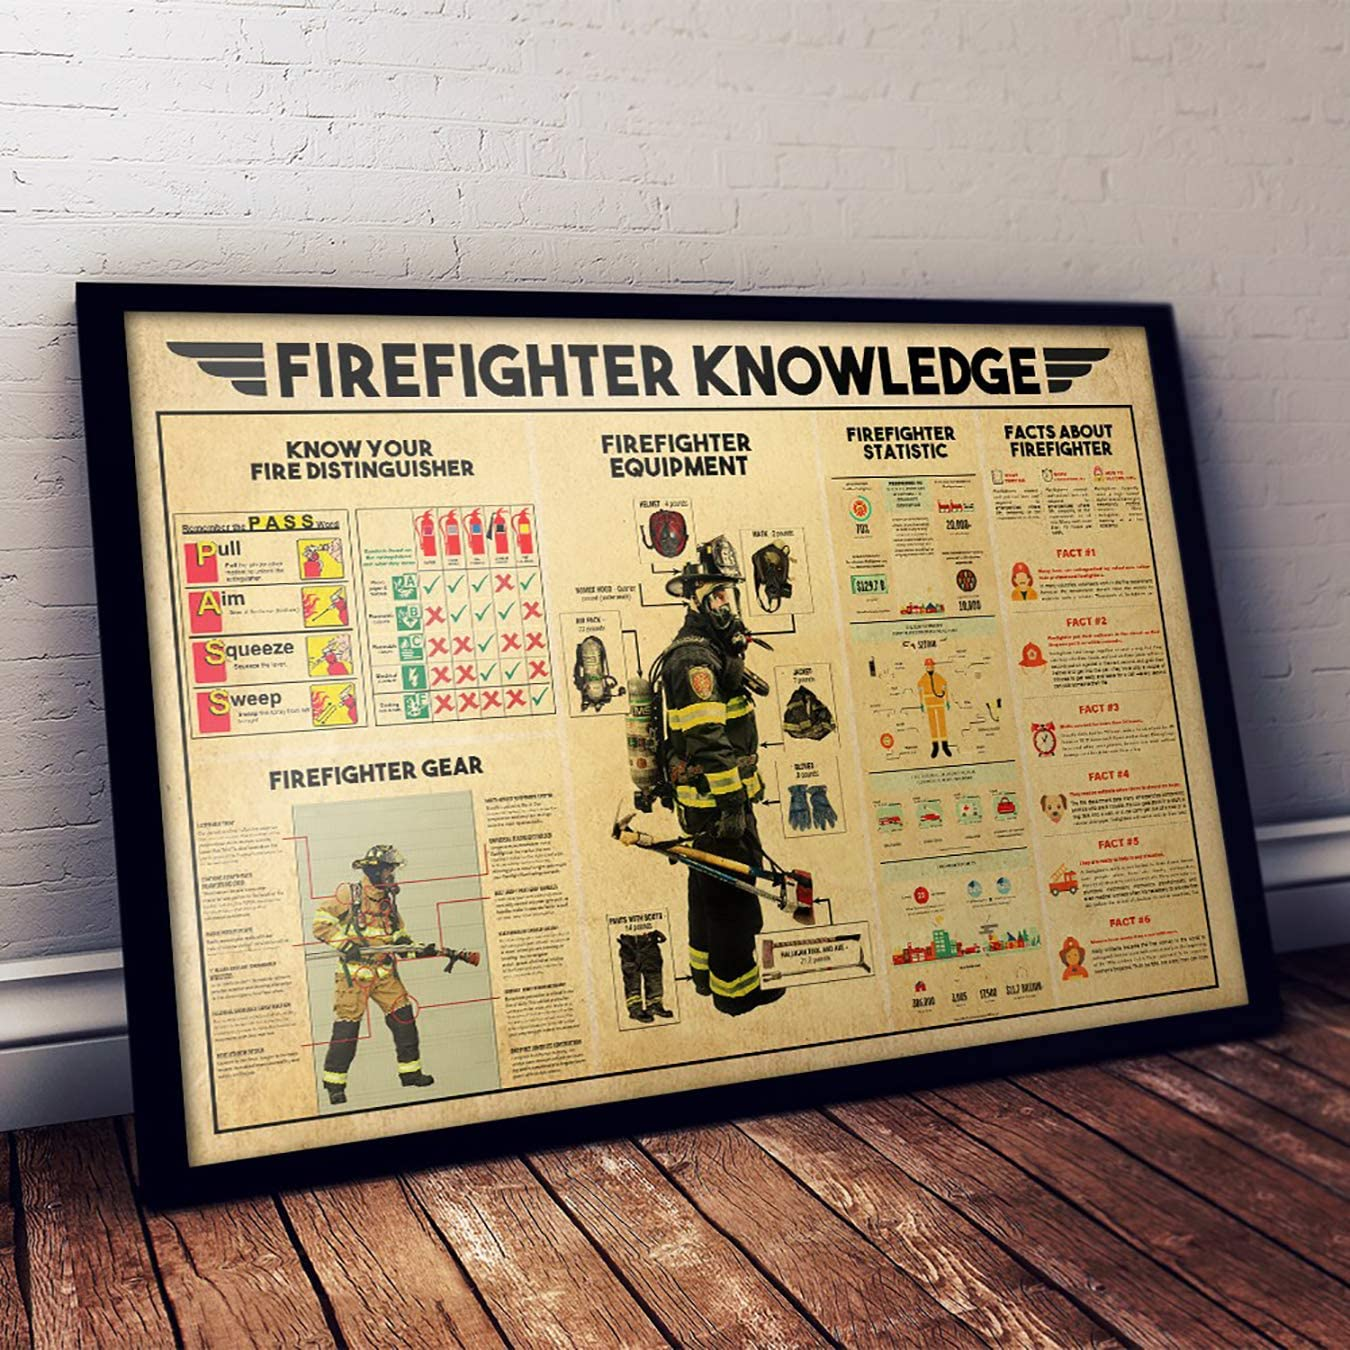 "Sarah Poster - Unframed Poster Wall Art Firefighter Knowledge- House Decor - Motivational Wall Art - Aesthetic Posters - Vintage Posters (Vintage Color, Large 24"" x 36"")"